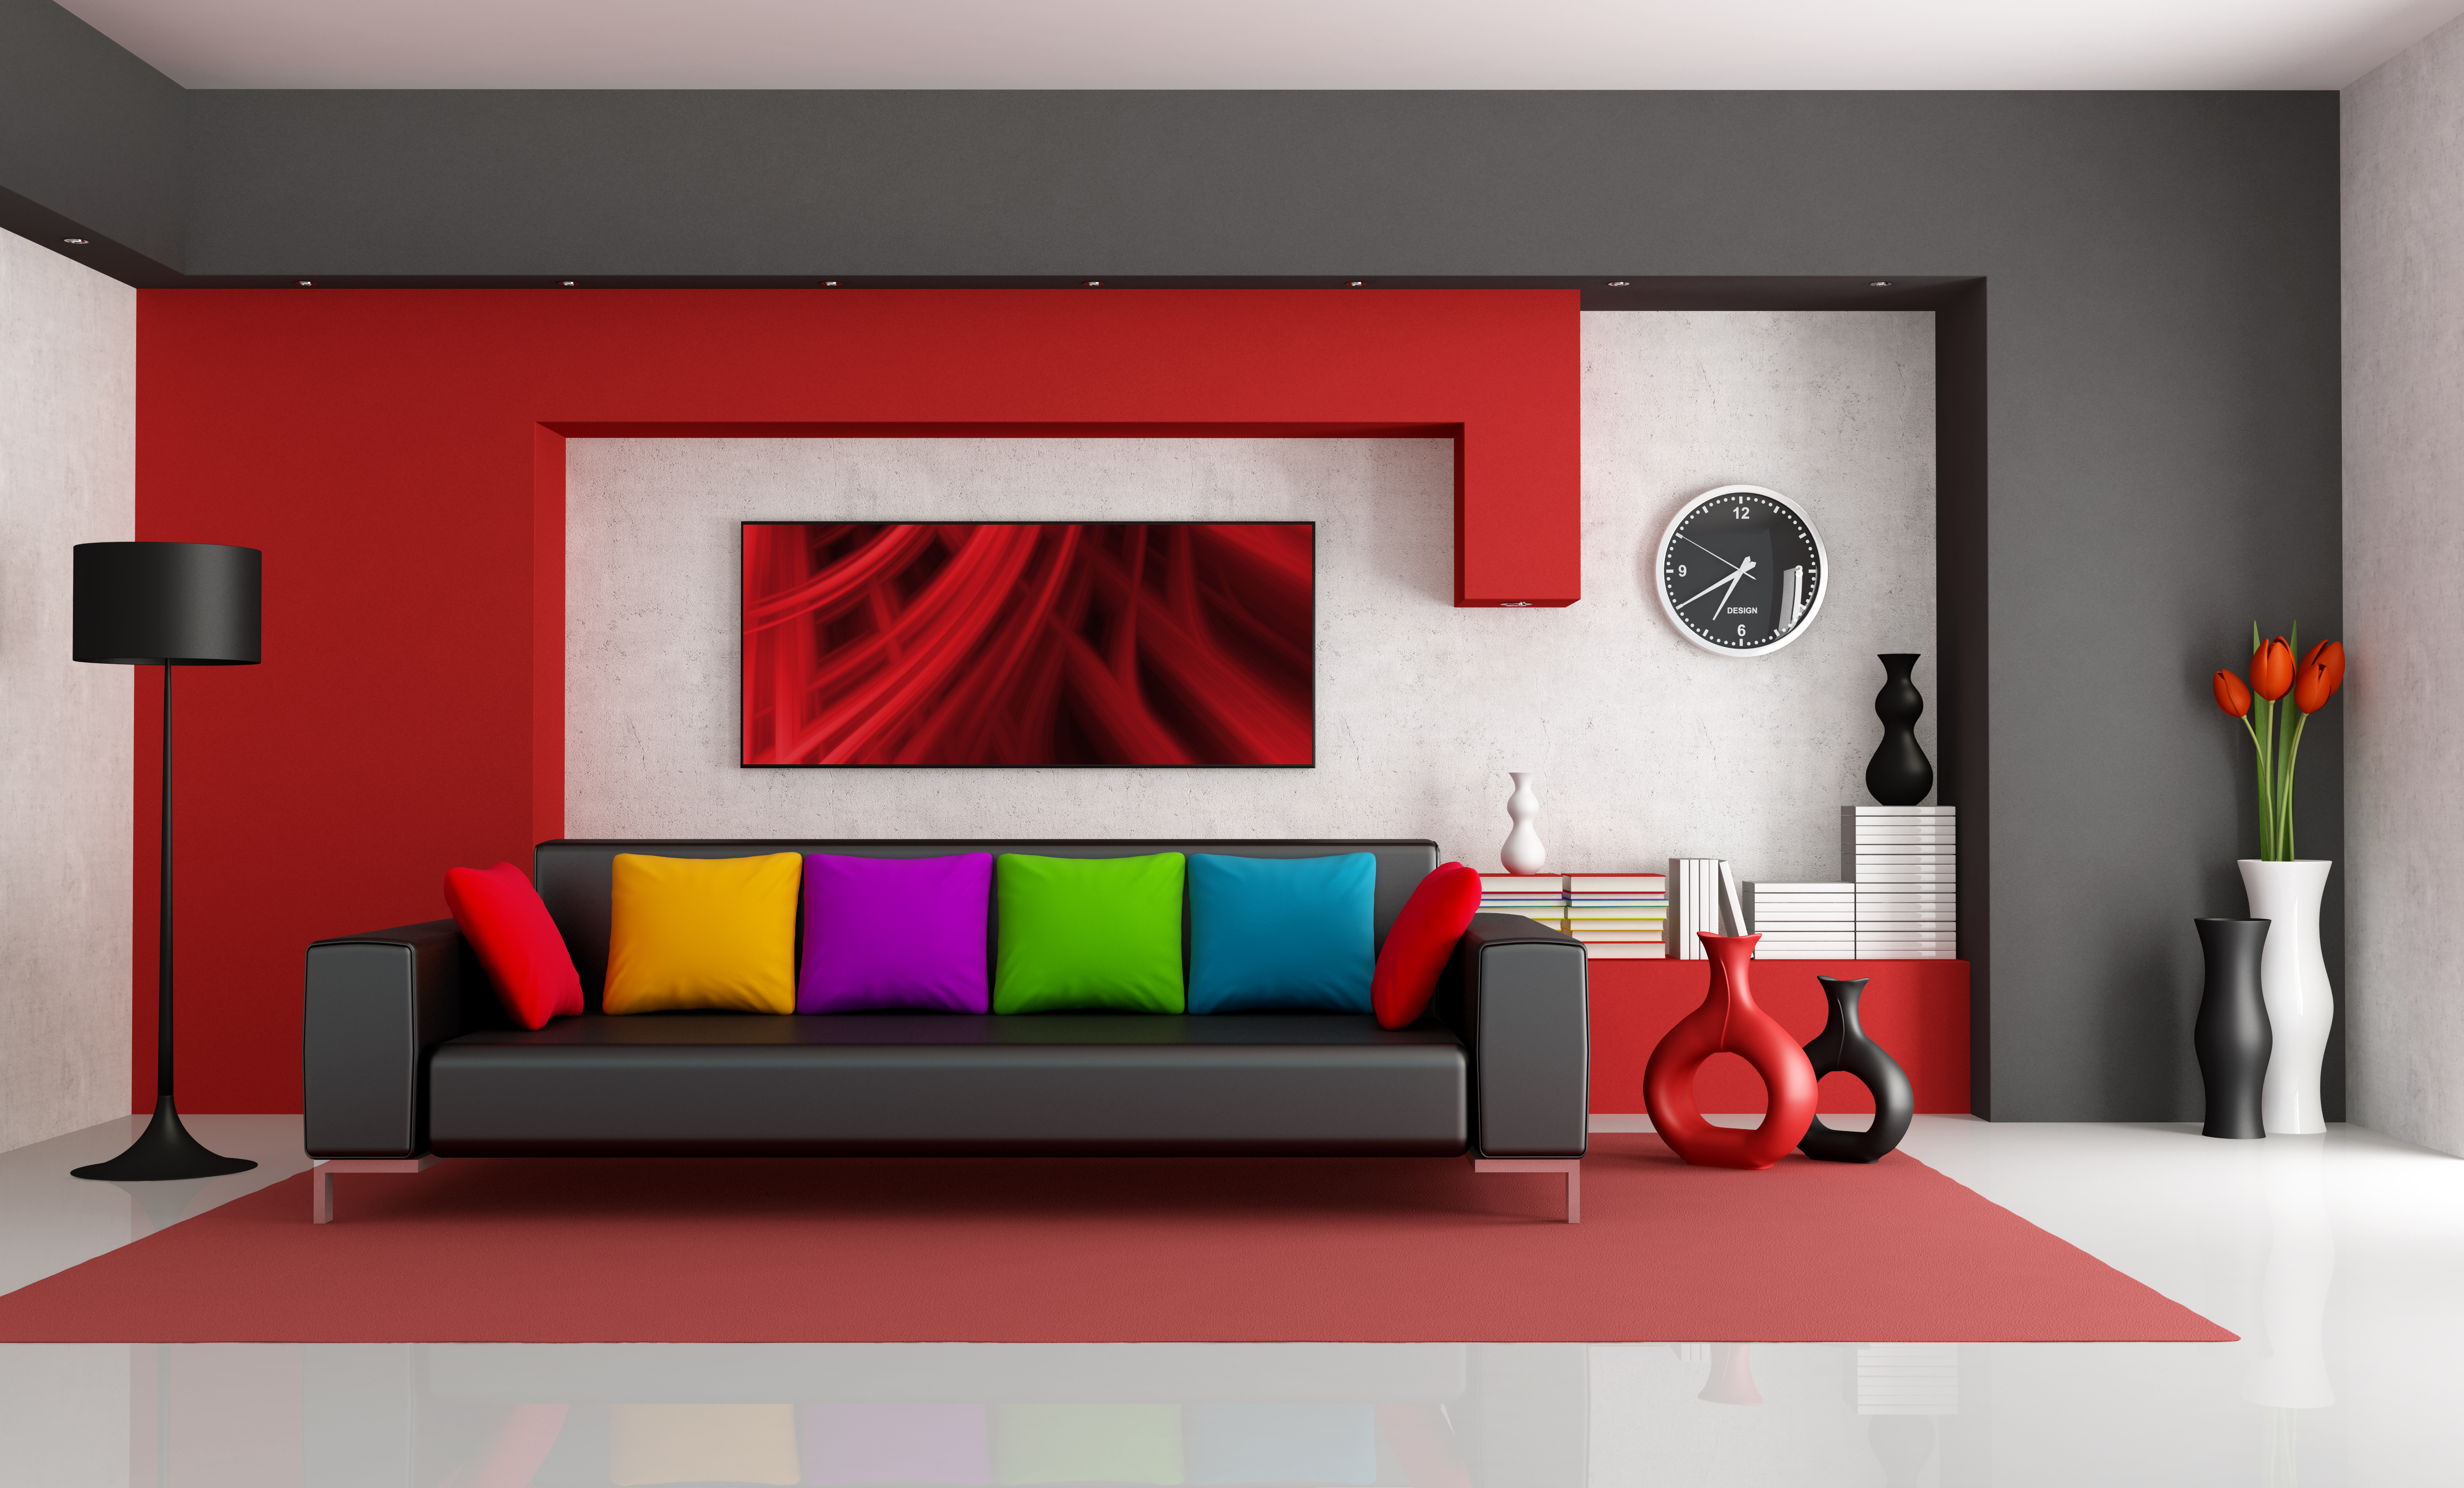 Living Room Background.  126 Living Room HD Wallpapers Background Images Wallpaper Abyss